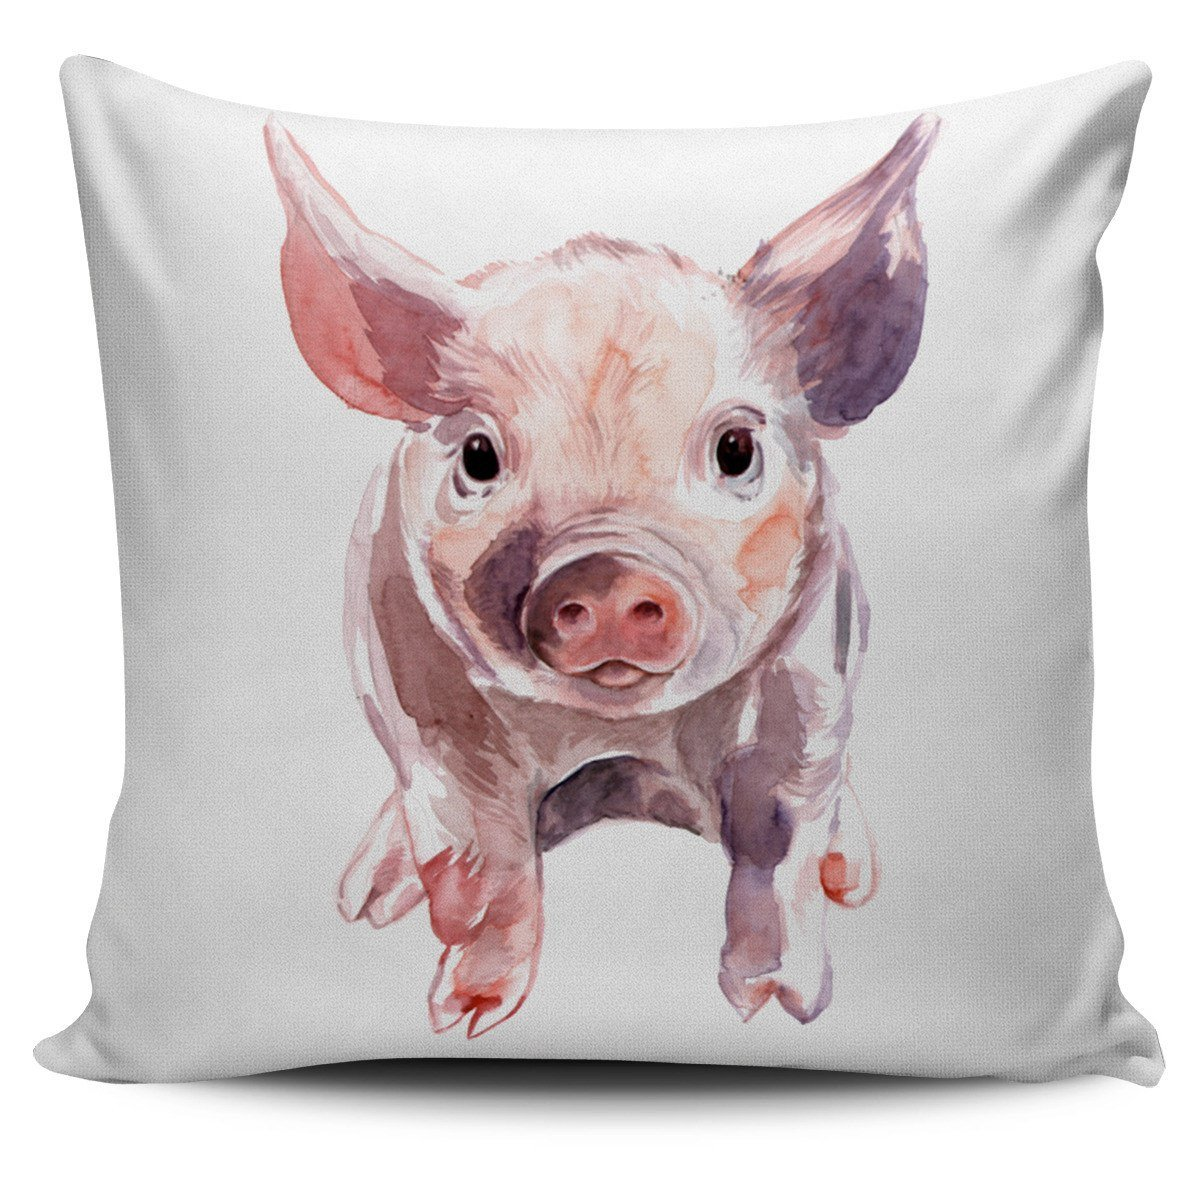 Charmant Pillows   TIDY PIG PILLOW